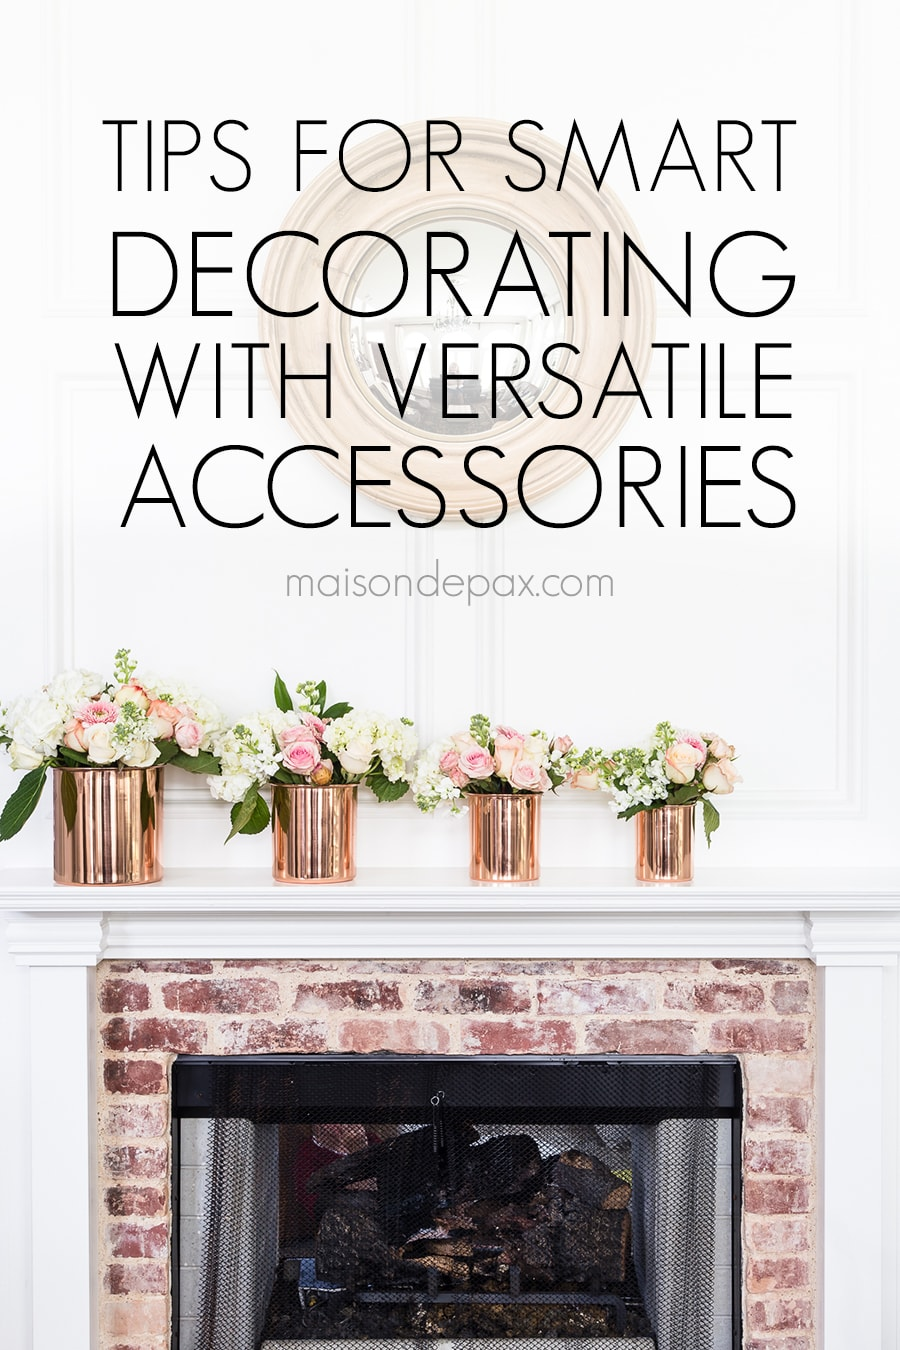 Tips for smart decorating! Find out which accessories are most versatile in your home! #efficiency #budgetfriendly #budgetdecor #decoratingideas #accessories #homedecor